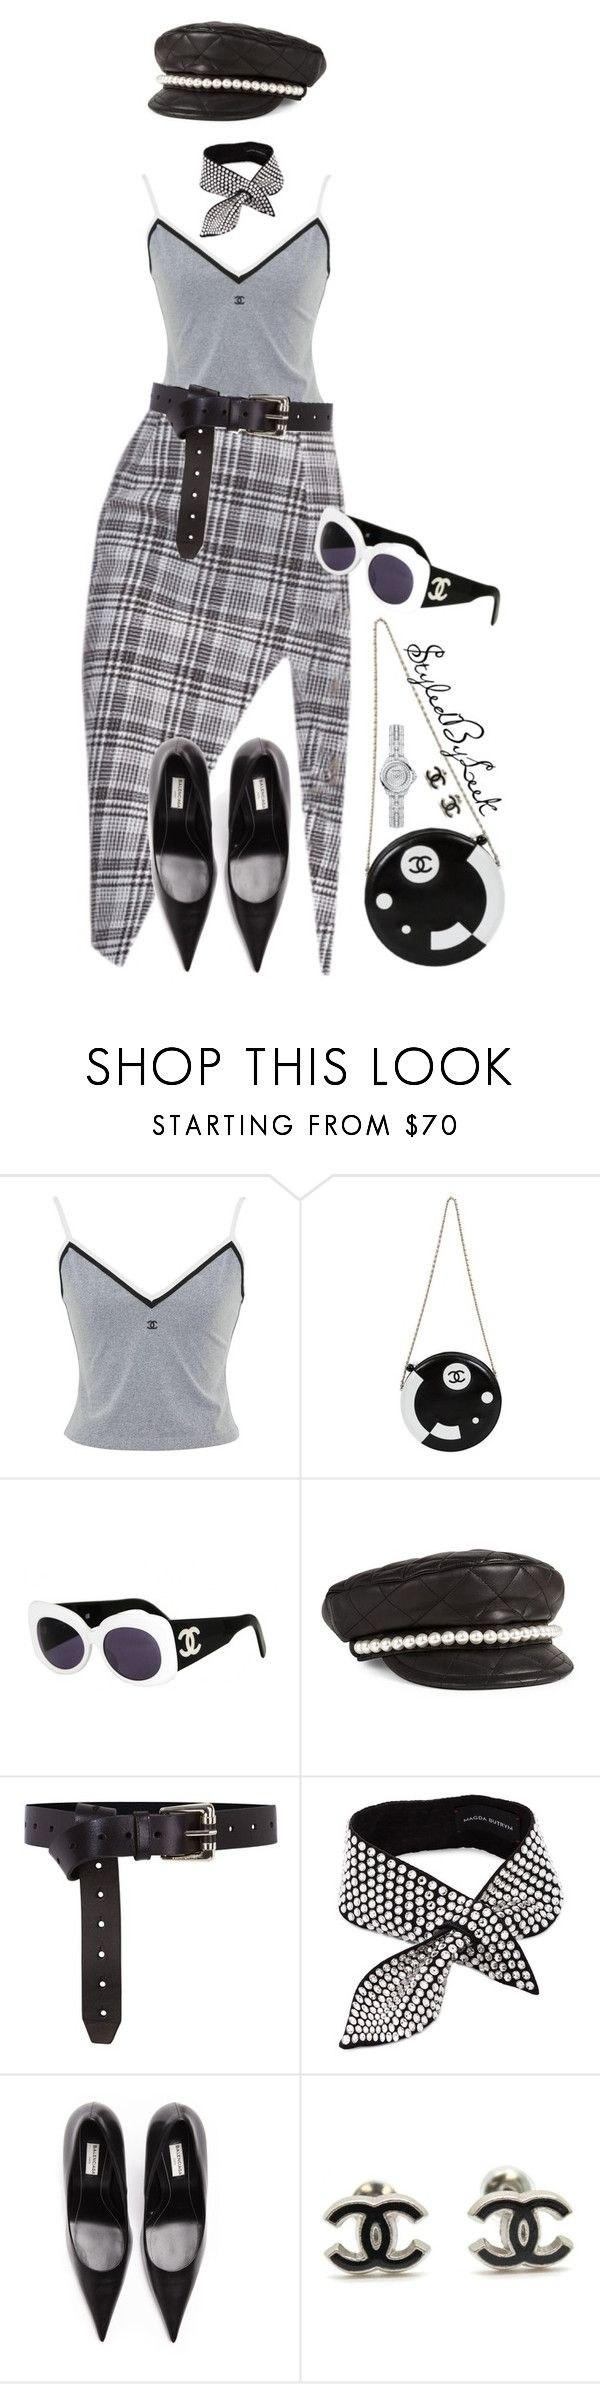 """StyledByLeek"" by stylebywho ❤ liked on Polyvore featuring Chanel, Moschino, Karen Millen, Magda Butrym and Balenciaga"